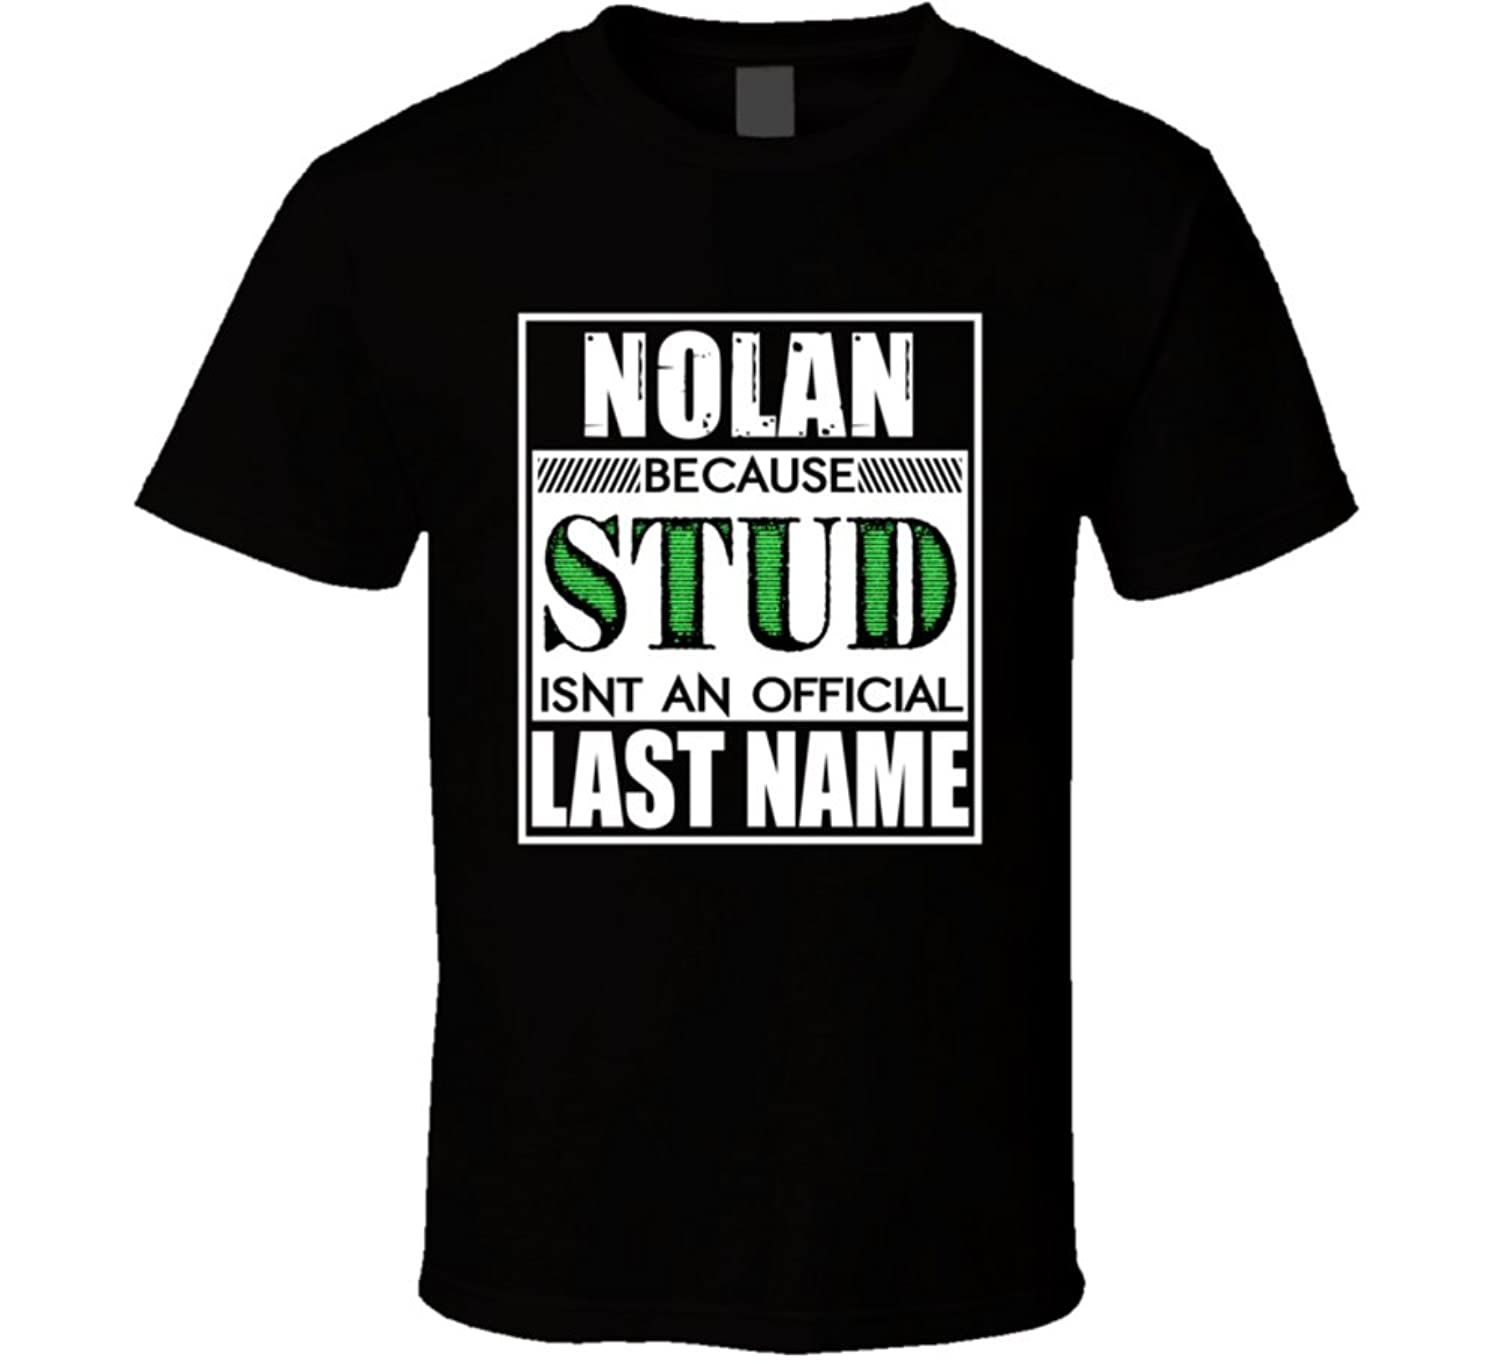 Nolan Because Stud official Last Name Funny T Shirt